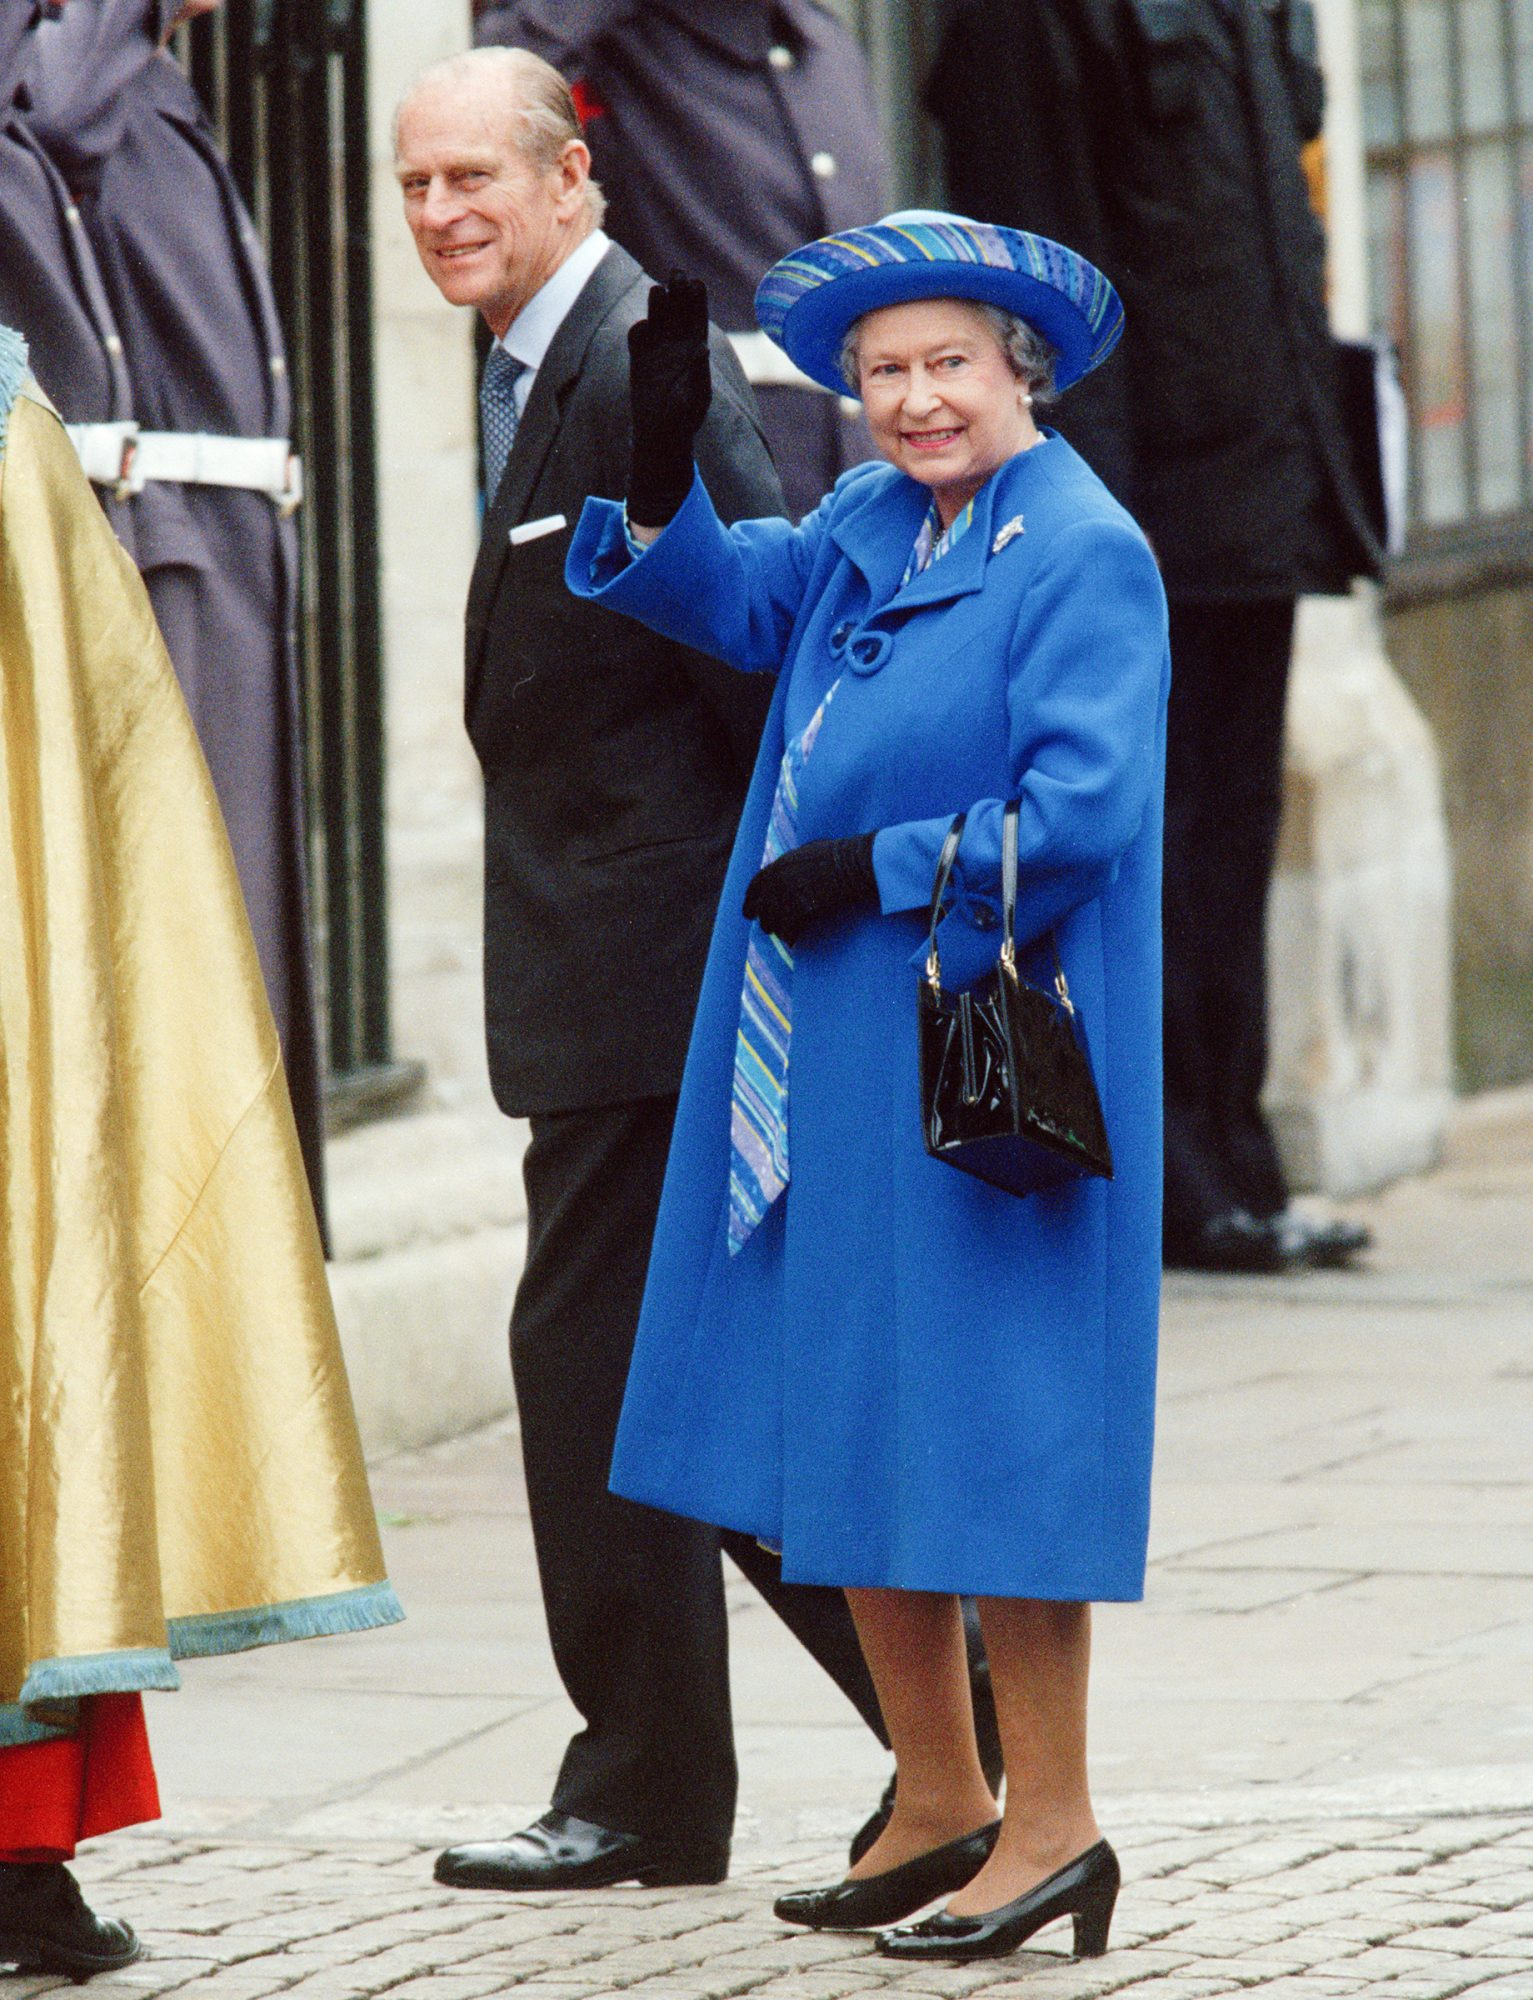 Queen Elizabeth II and Prince Philip, Duke of Edinburgh on the day of their 50th wedding anniversary in Westminster, London, UK, 20th November 1997